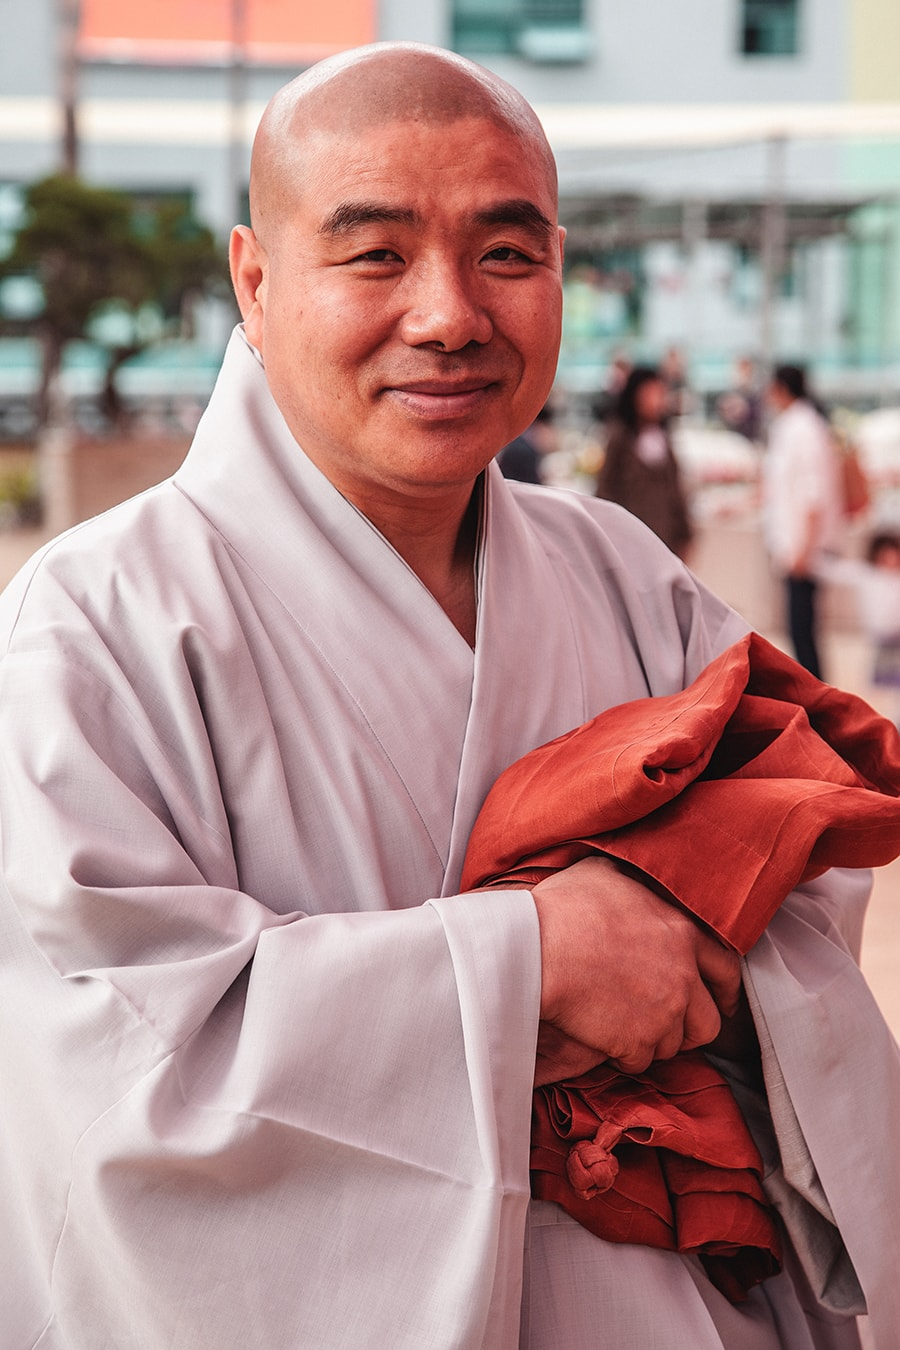 Buddhist monk at Jogyesa temple in Seoul, Korea.